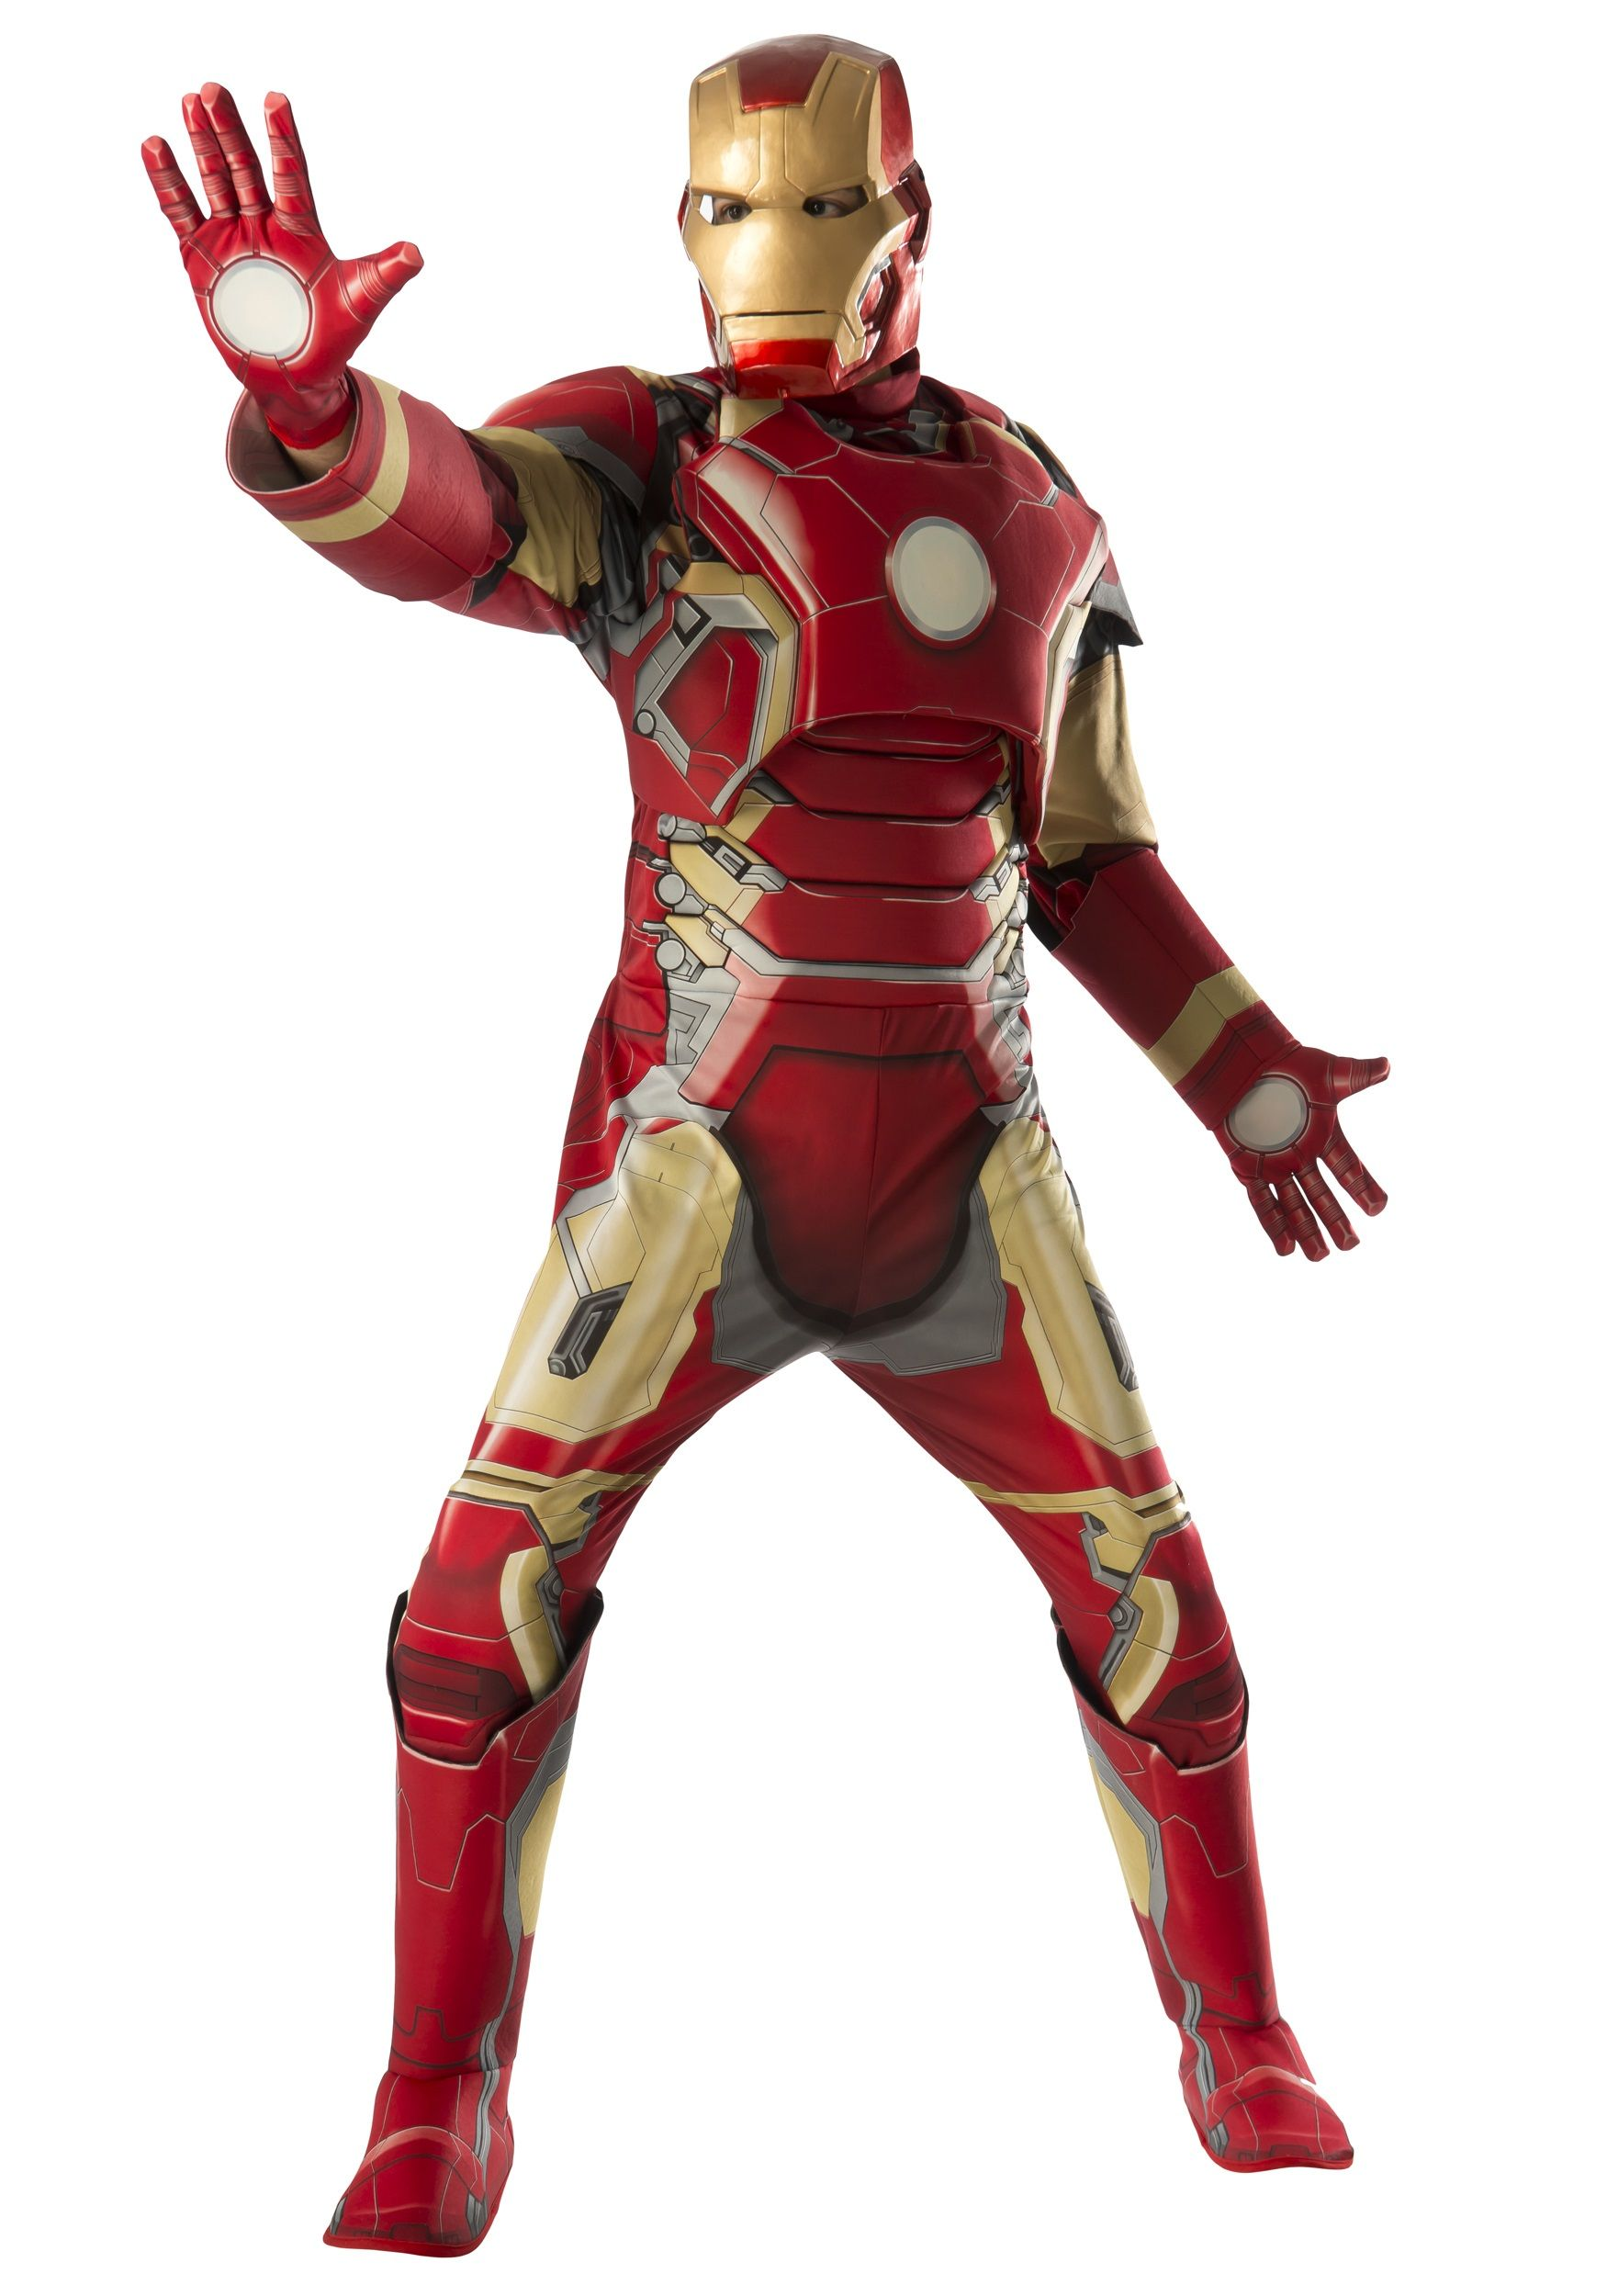 Adult Deluxe Iron Man Mark 43 Avengers 2 Costume | Costumes and ...